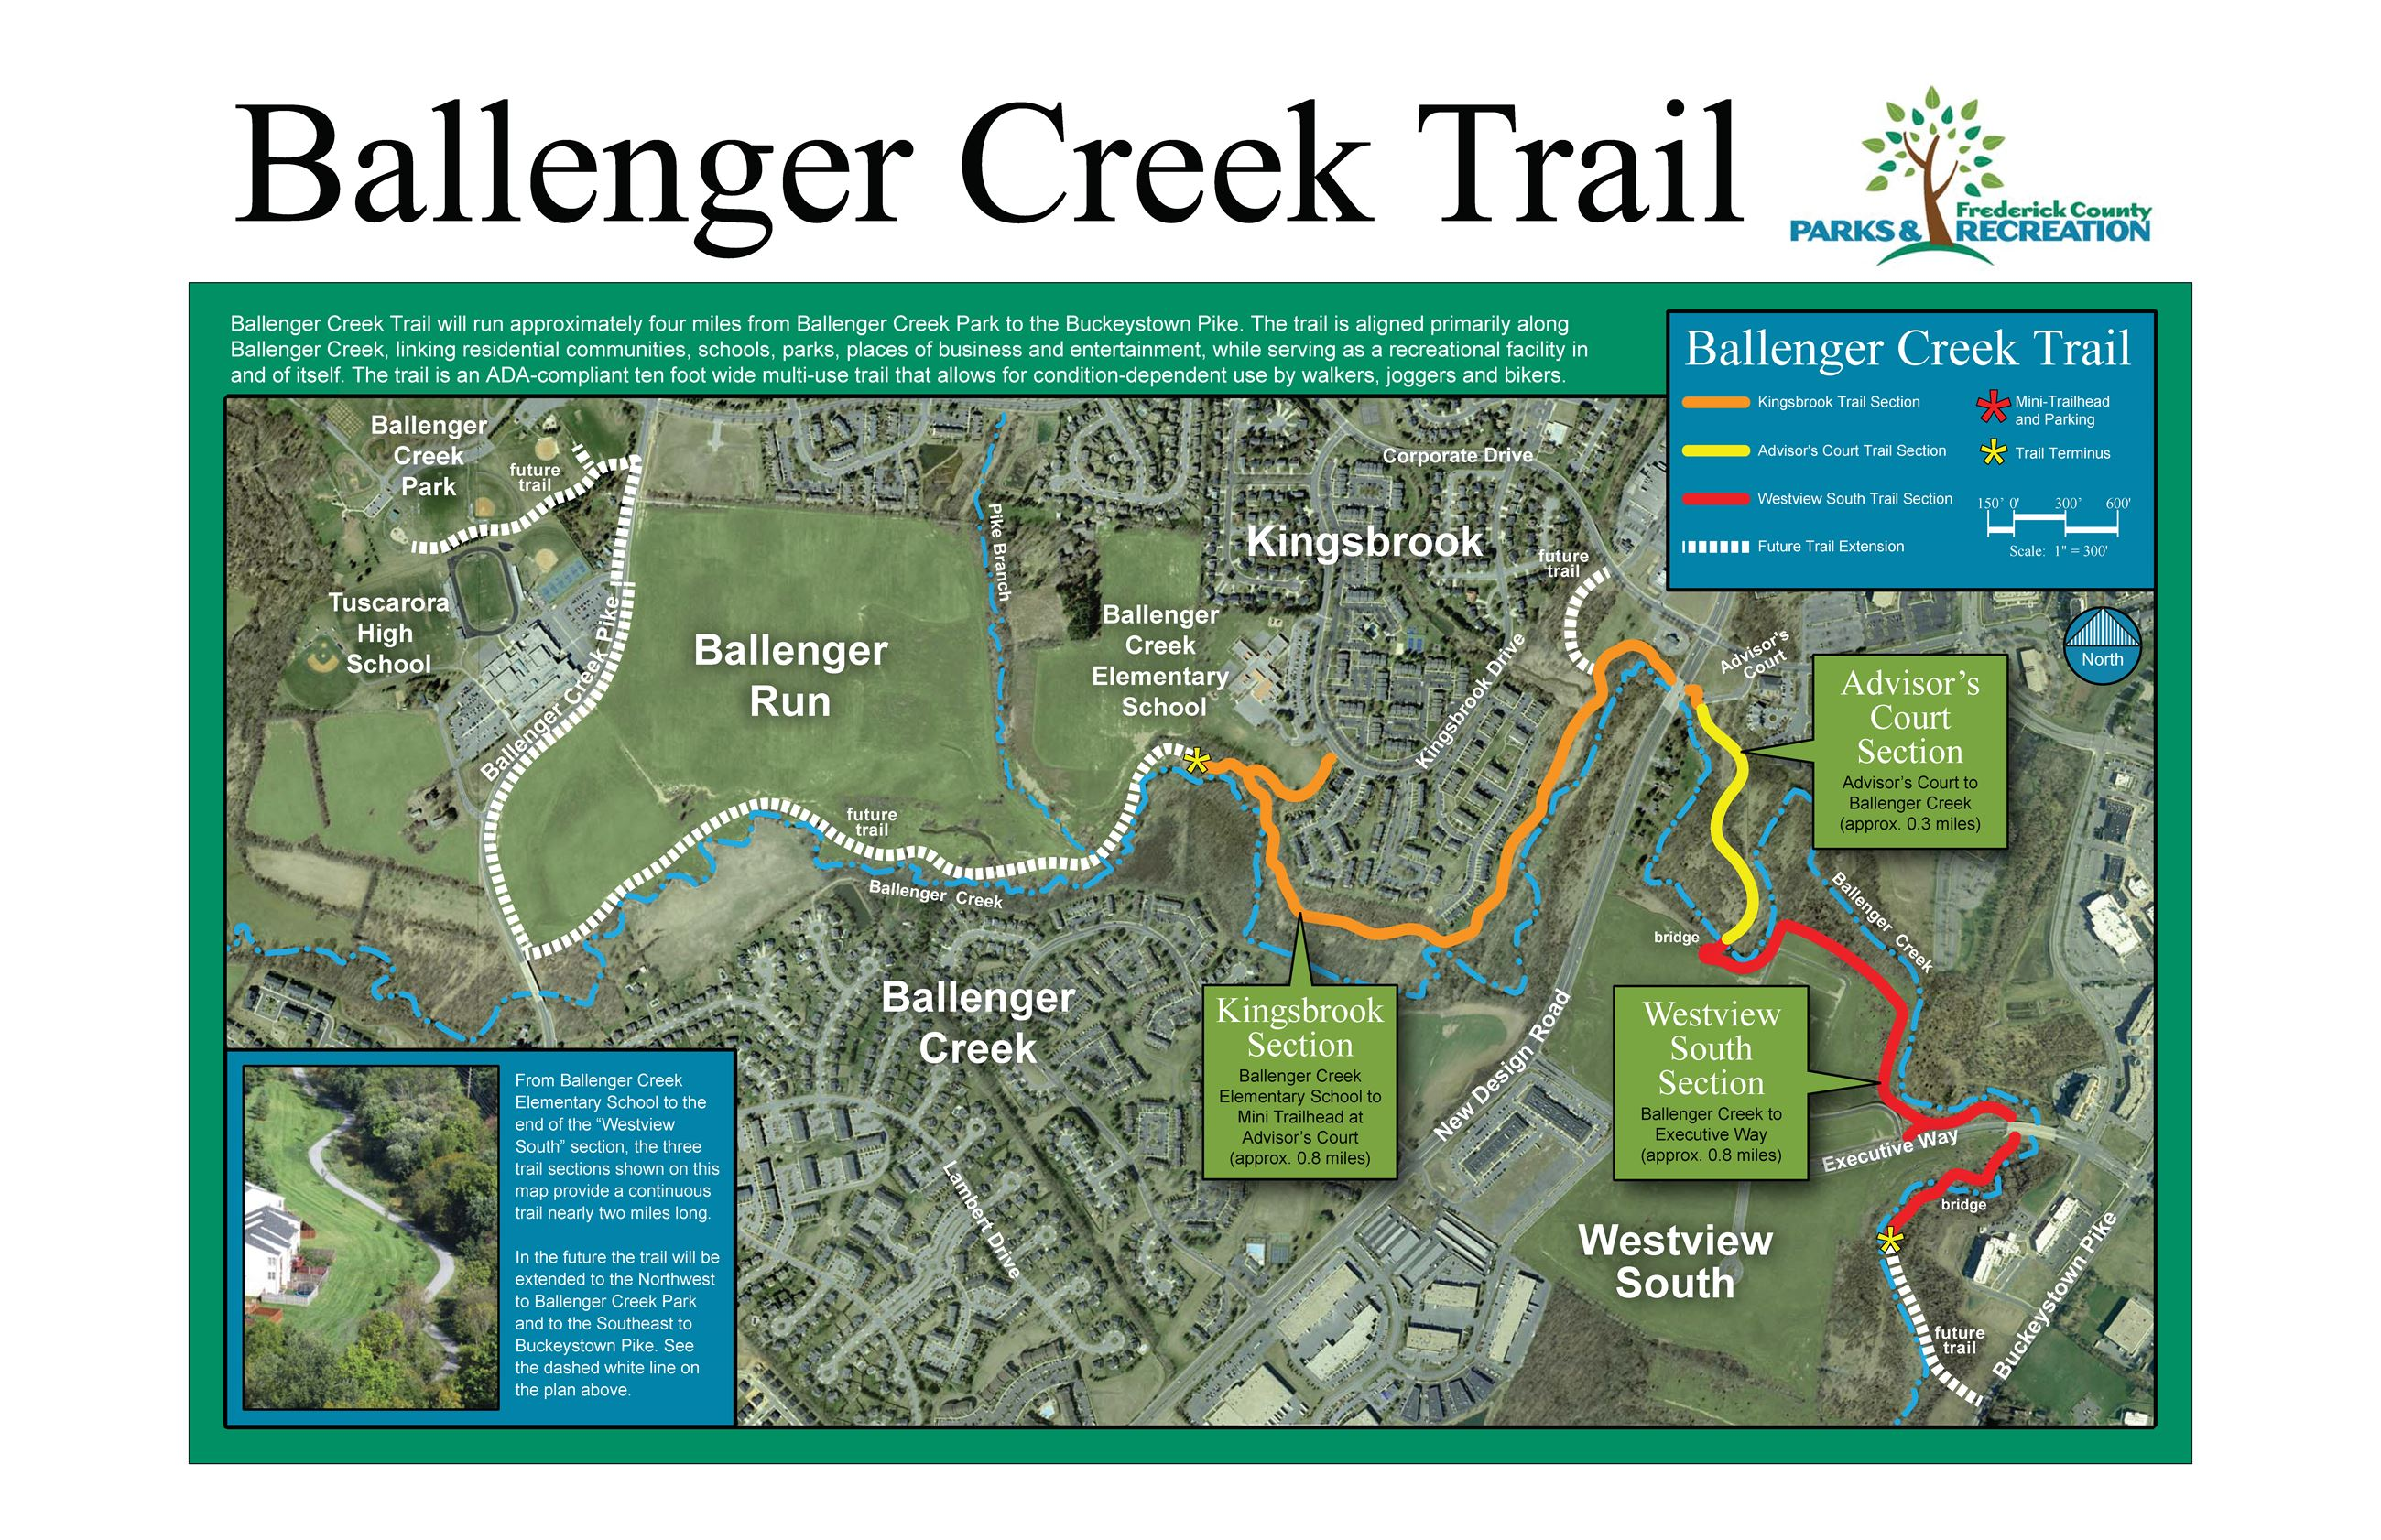 Ballenger Creek Trail